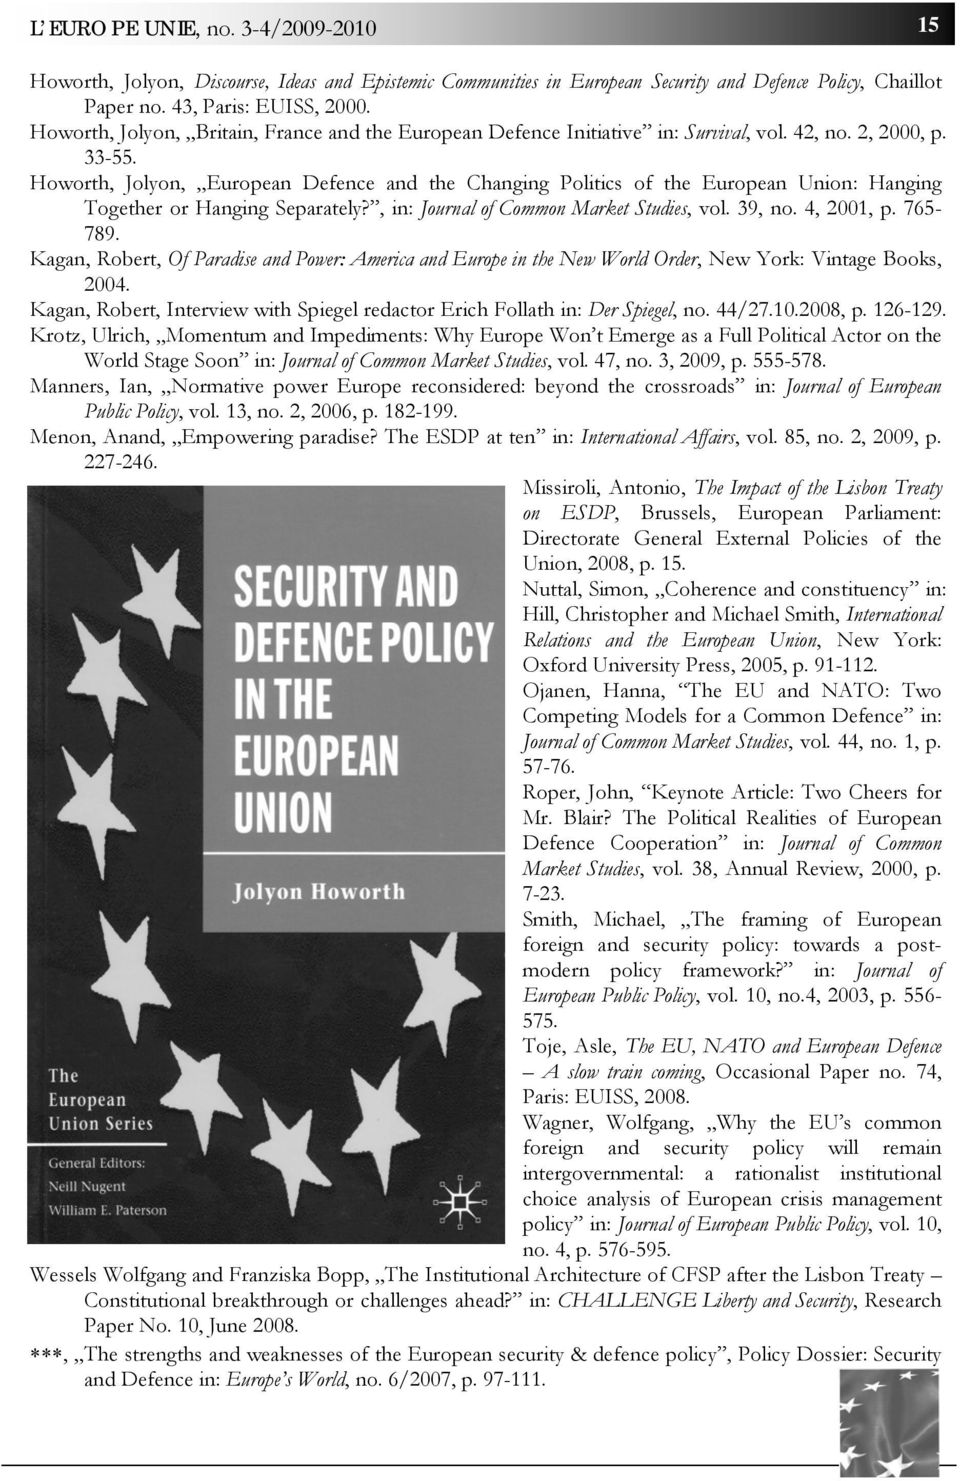 Howorth, Jolyon, European Defence and the Changing Politics of the European Union: Hanging Together or Hanging Separately?, in: Journal of Common Market Studies, vol. 39, no. 4, 2001, p. 765-789.